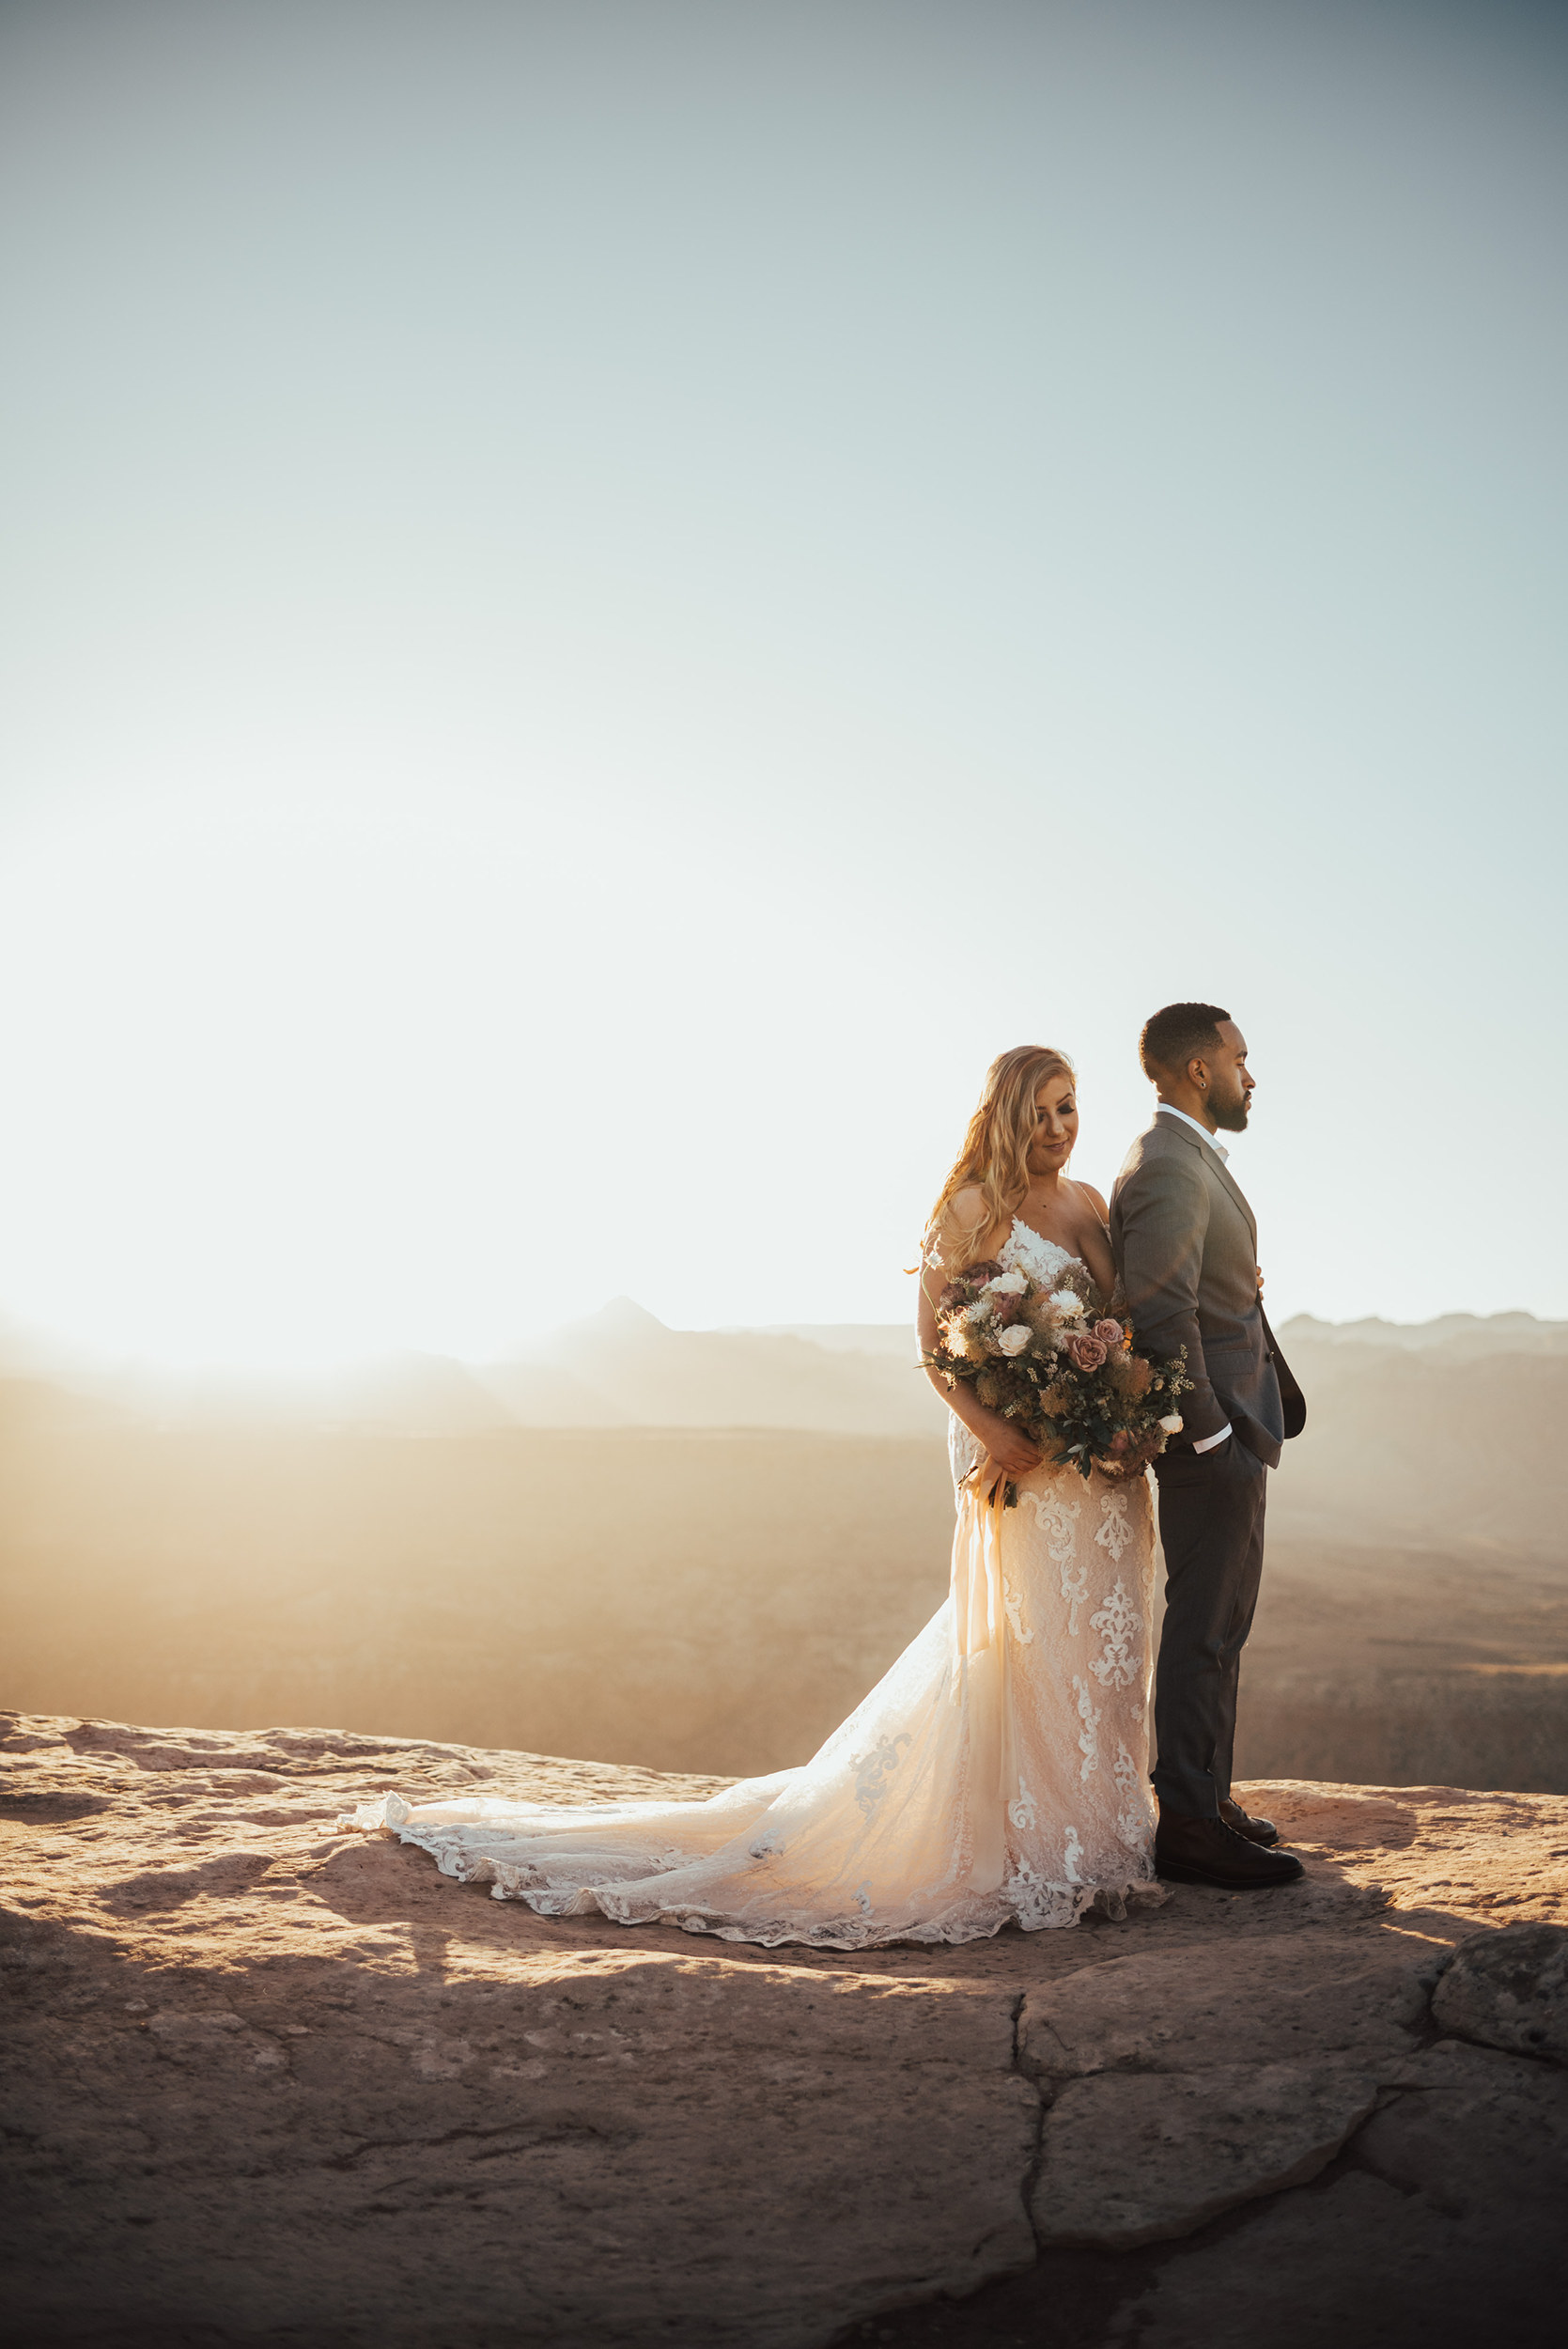 savannah-bridal-shop-ivory-and-beau-maggie-sottero-bride-tuscany-lynette-zion-national-park-wedding-utah-wedding-savannah-wedding-dresses-savannah-wedding-gowns-ashley-smith-photography-vanilla-and-the-bean-6.JPG